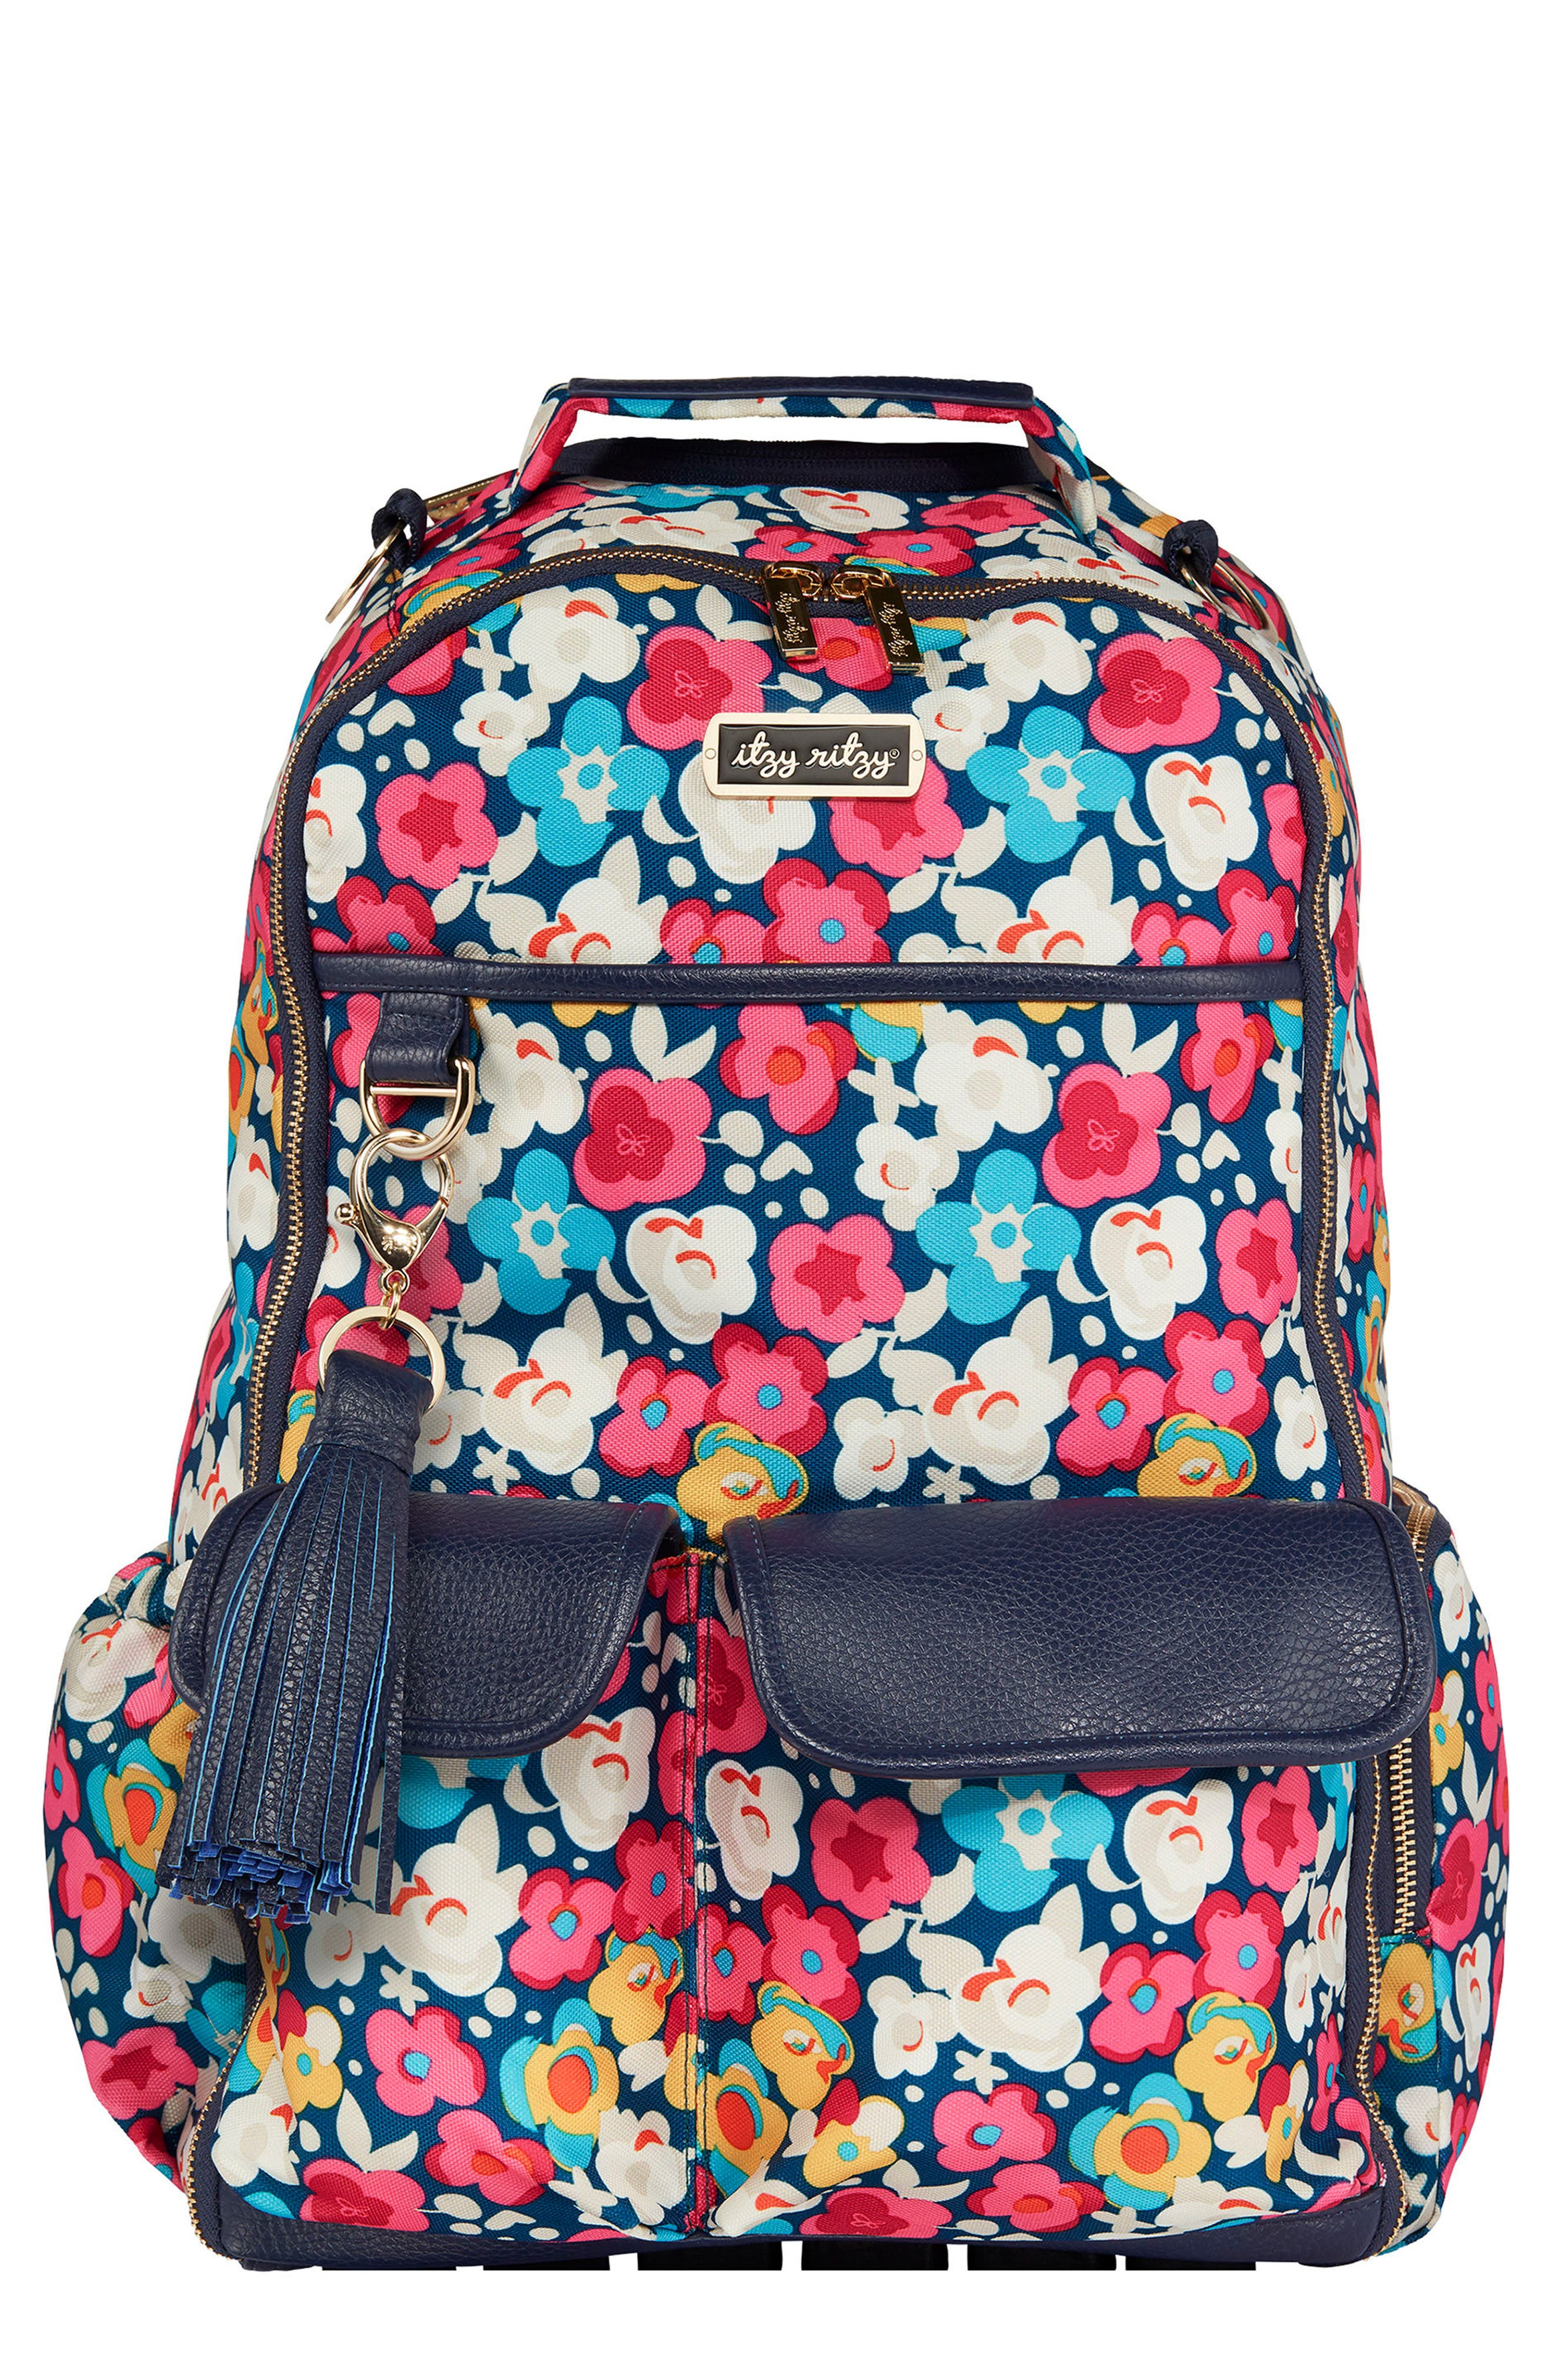 Alternate Image 1 Selected - Itzy Ritzy Diaper Bag Backpack